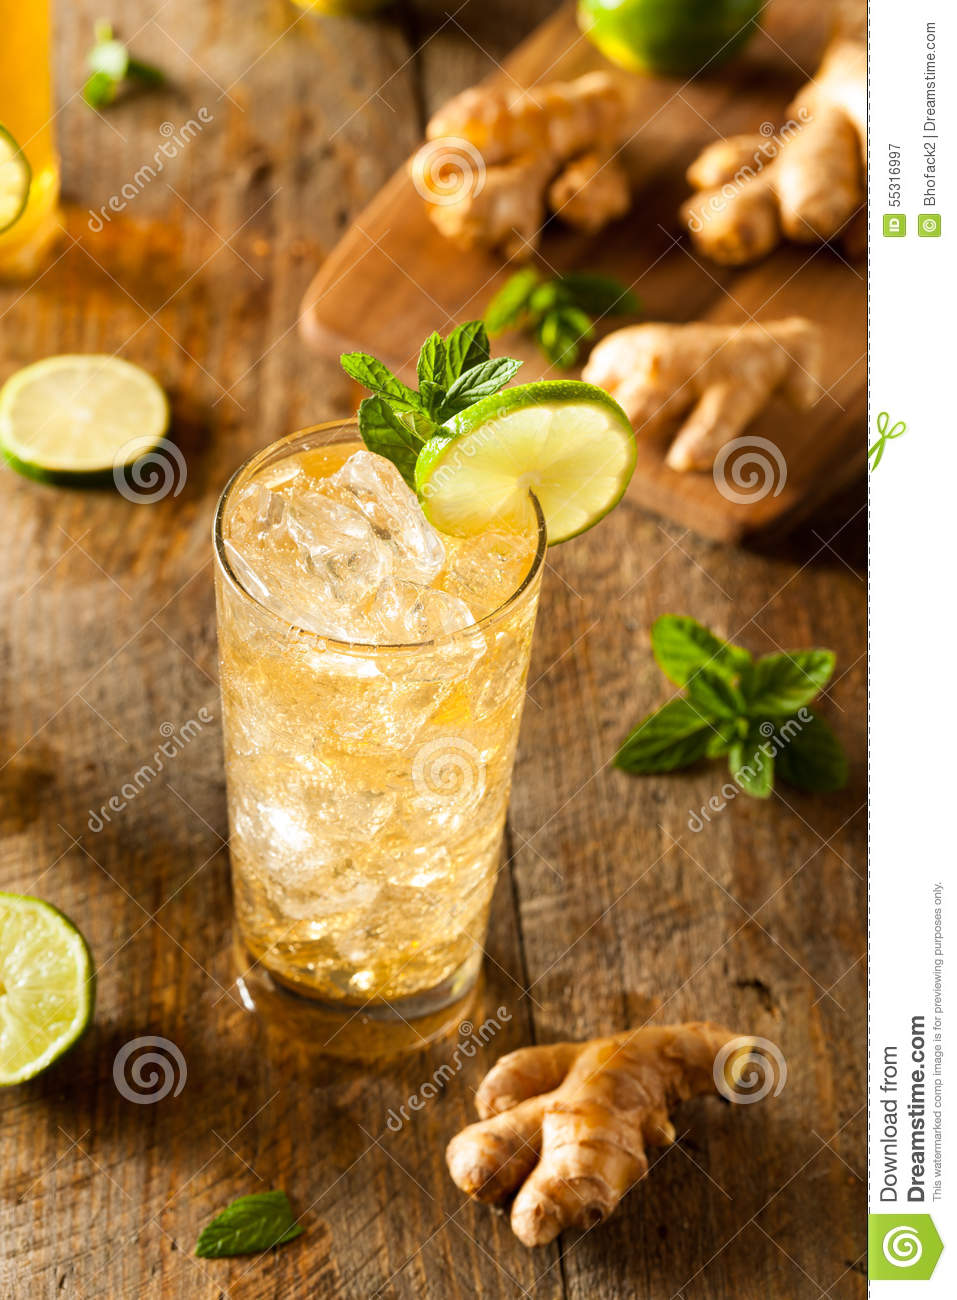 Ginger Beer dorato di rinfresco